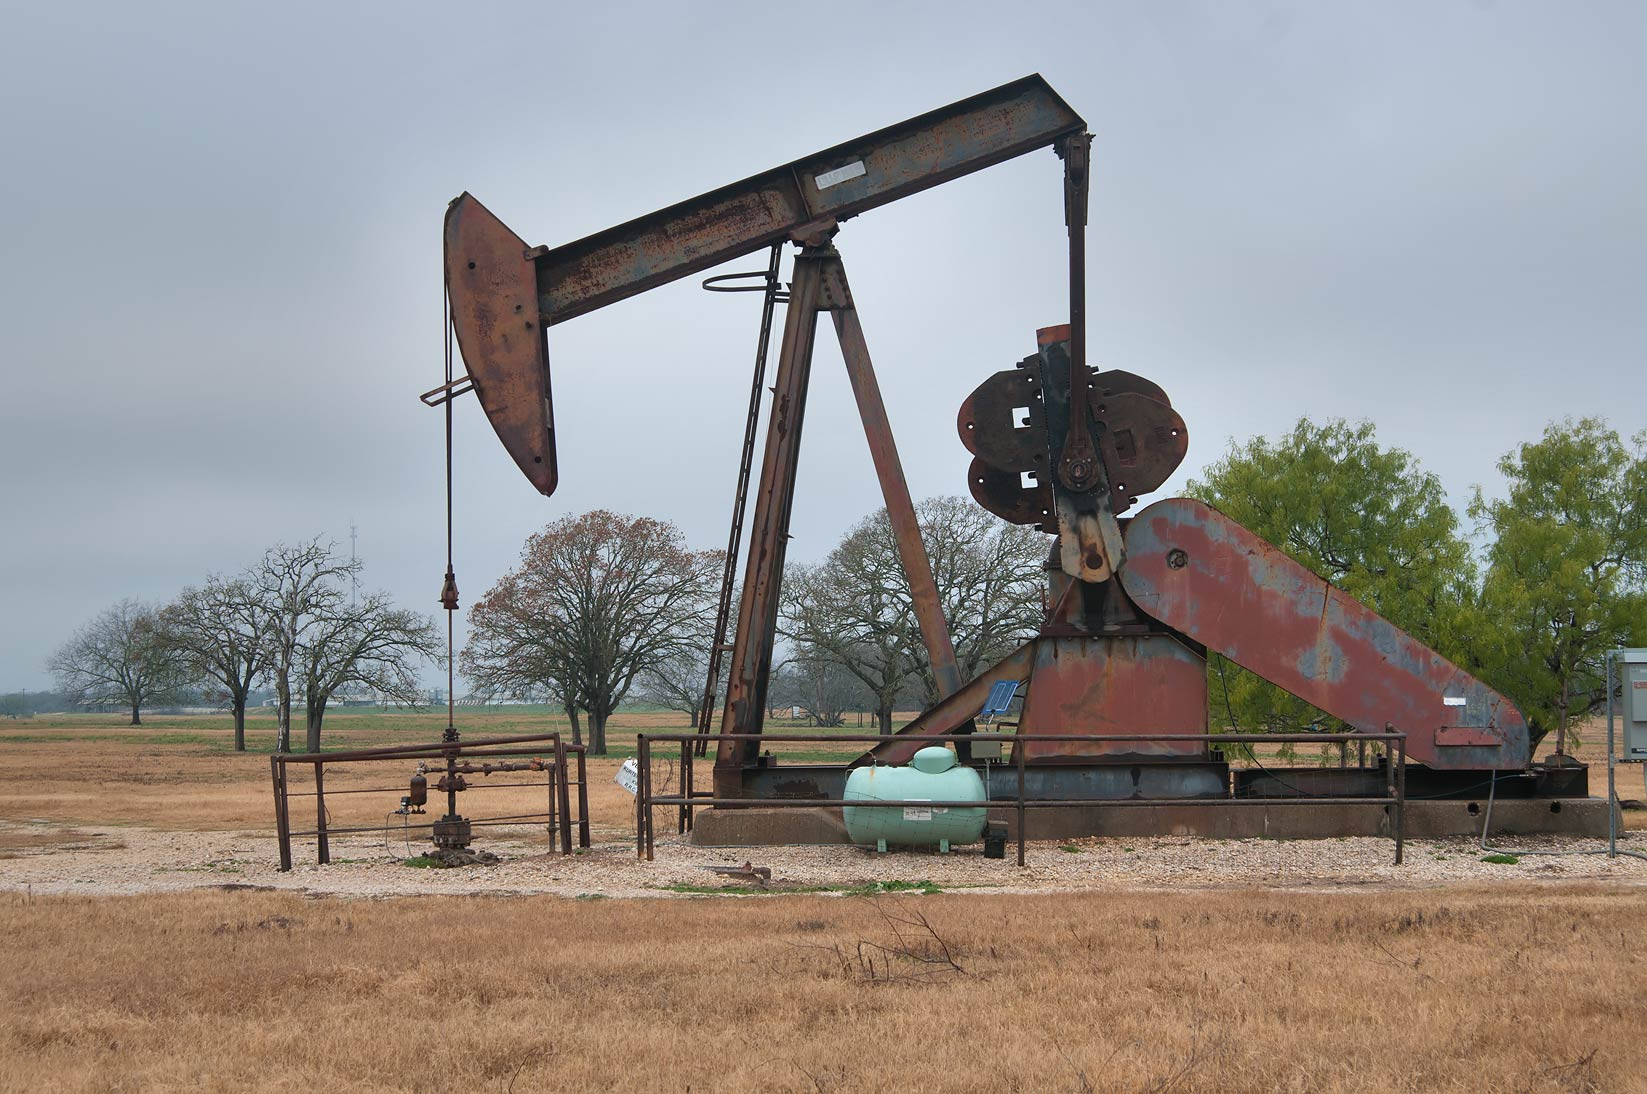 Reciprocating piston pump in an oil well...Democrat Rd., east from Bryan. Texas